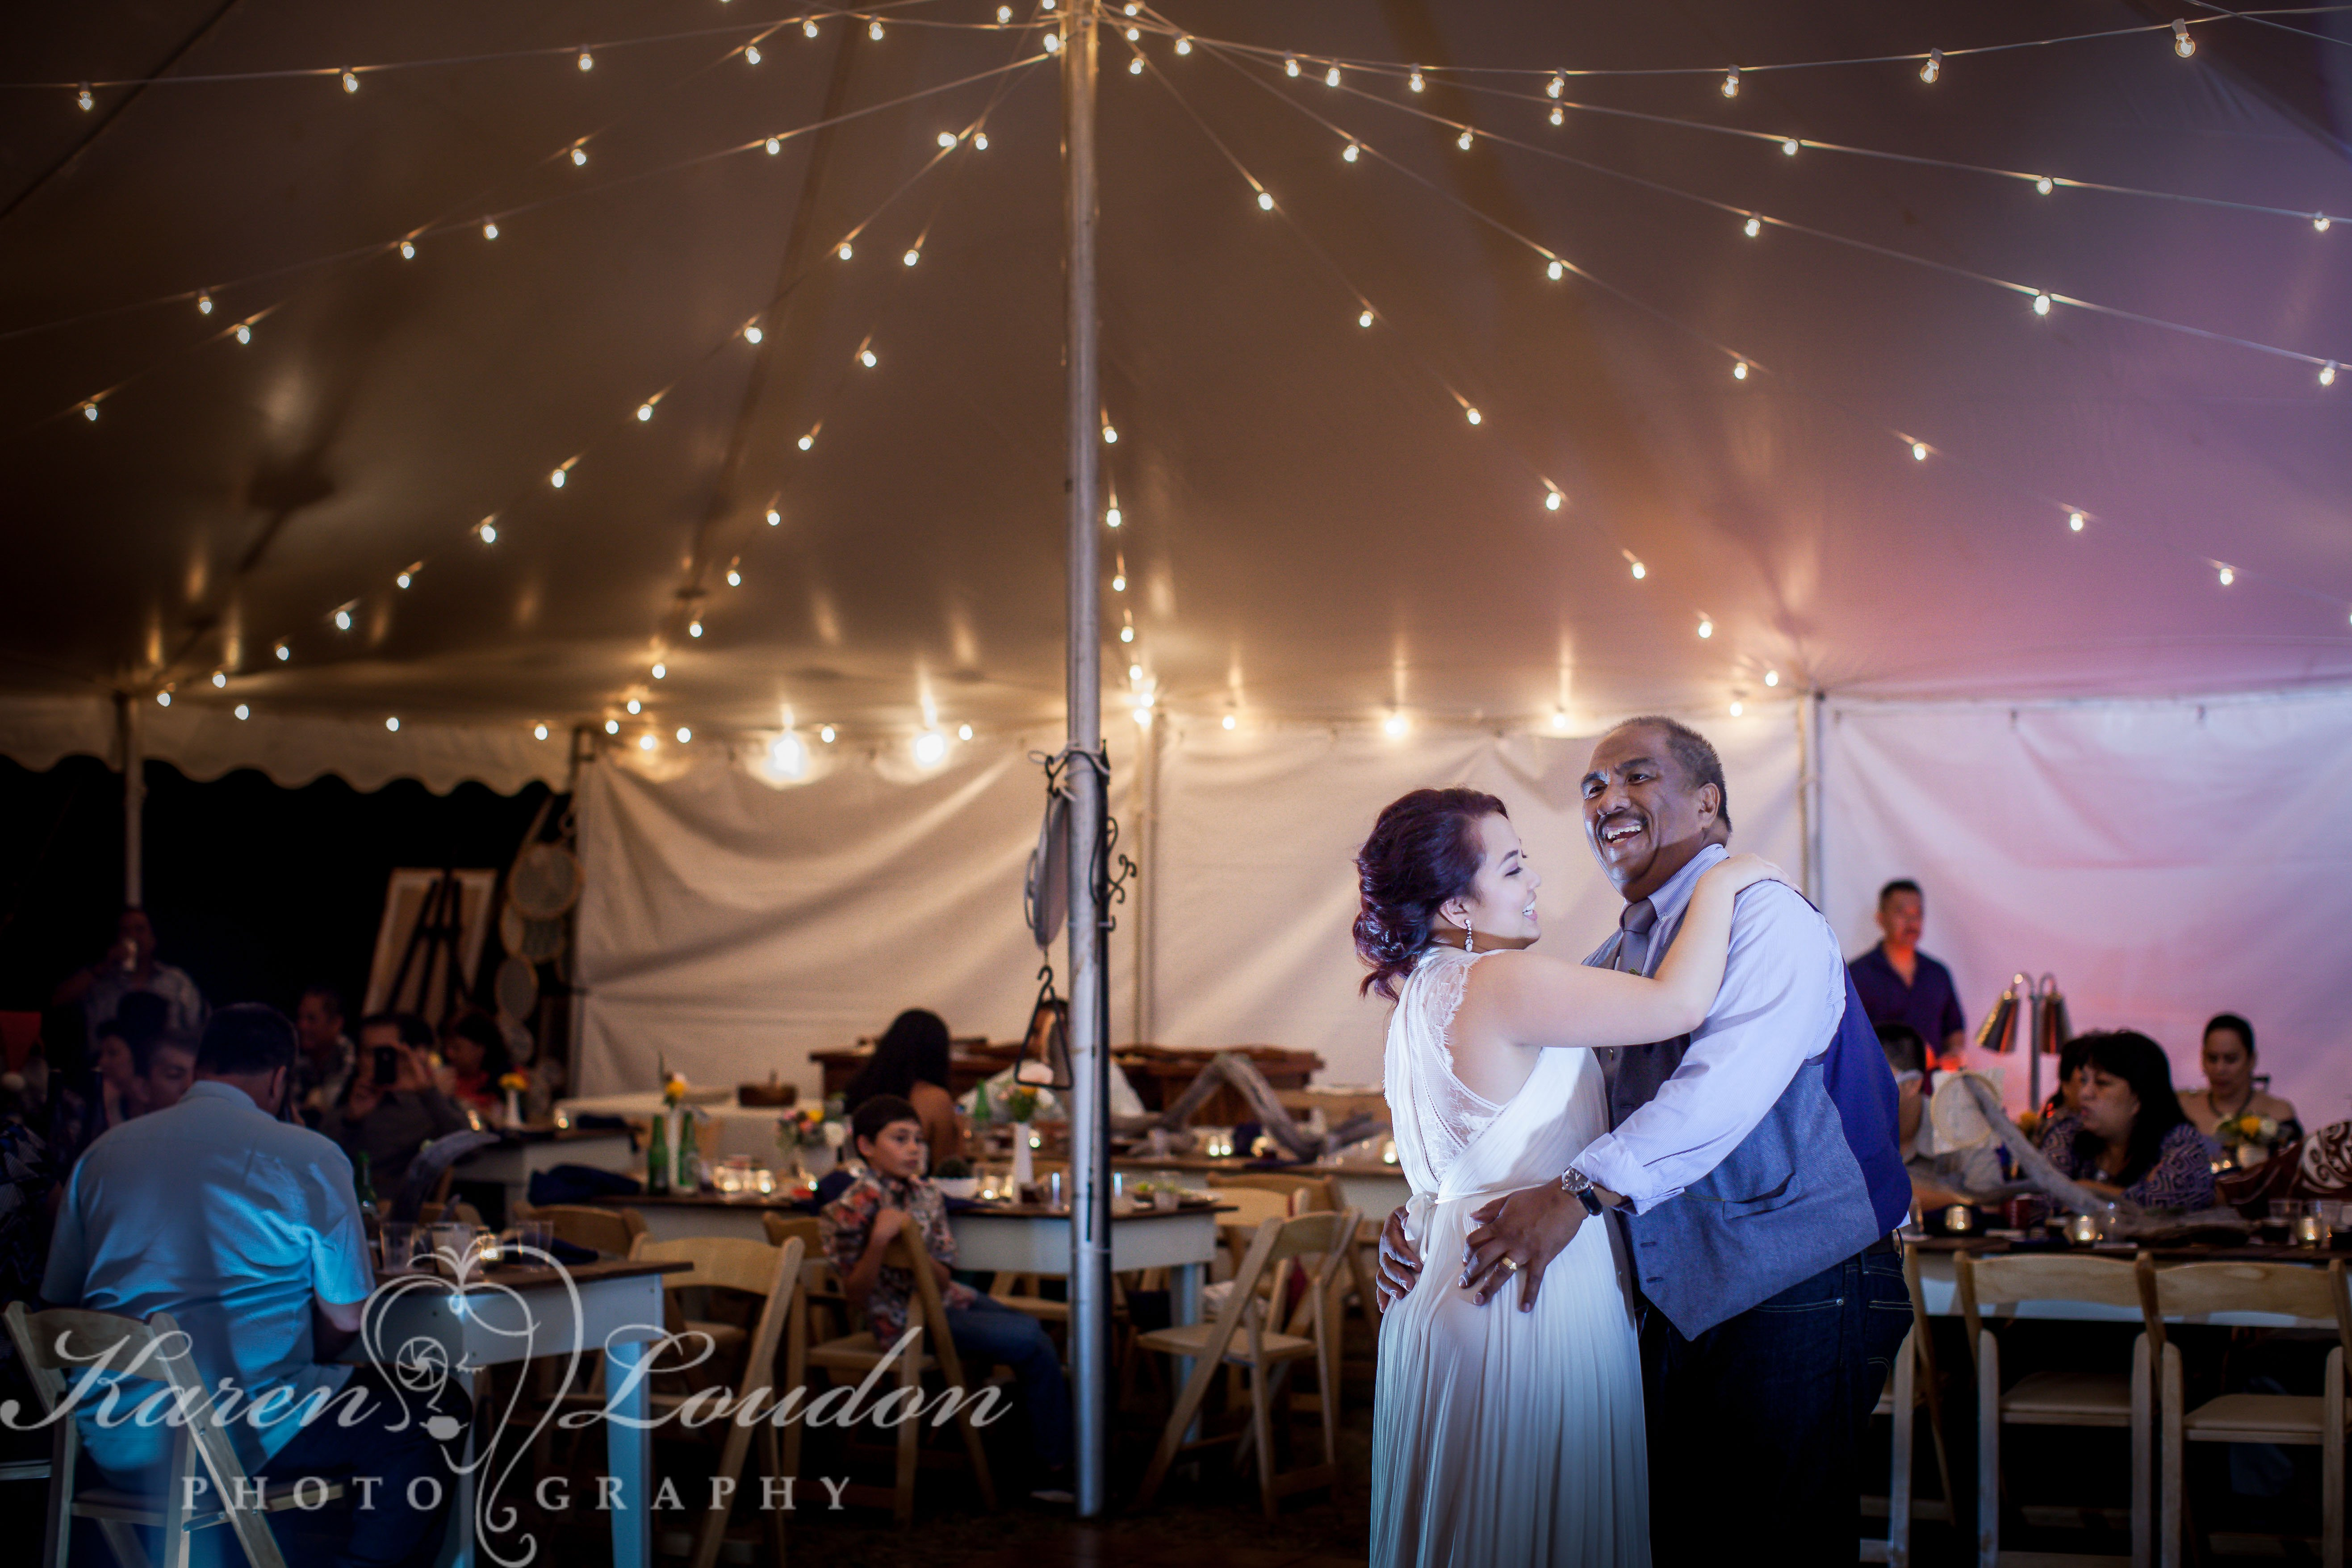 Anna Ranch, Wedding, Photography, Big Island, Hawaii, Waimea, Big Island Tent, waimeapartyrentals.com